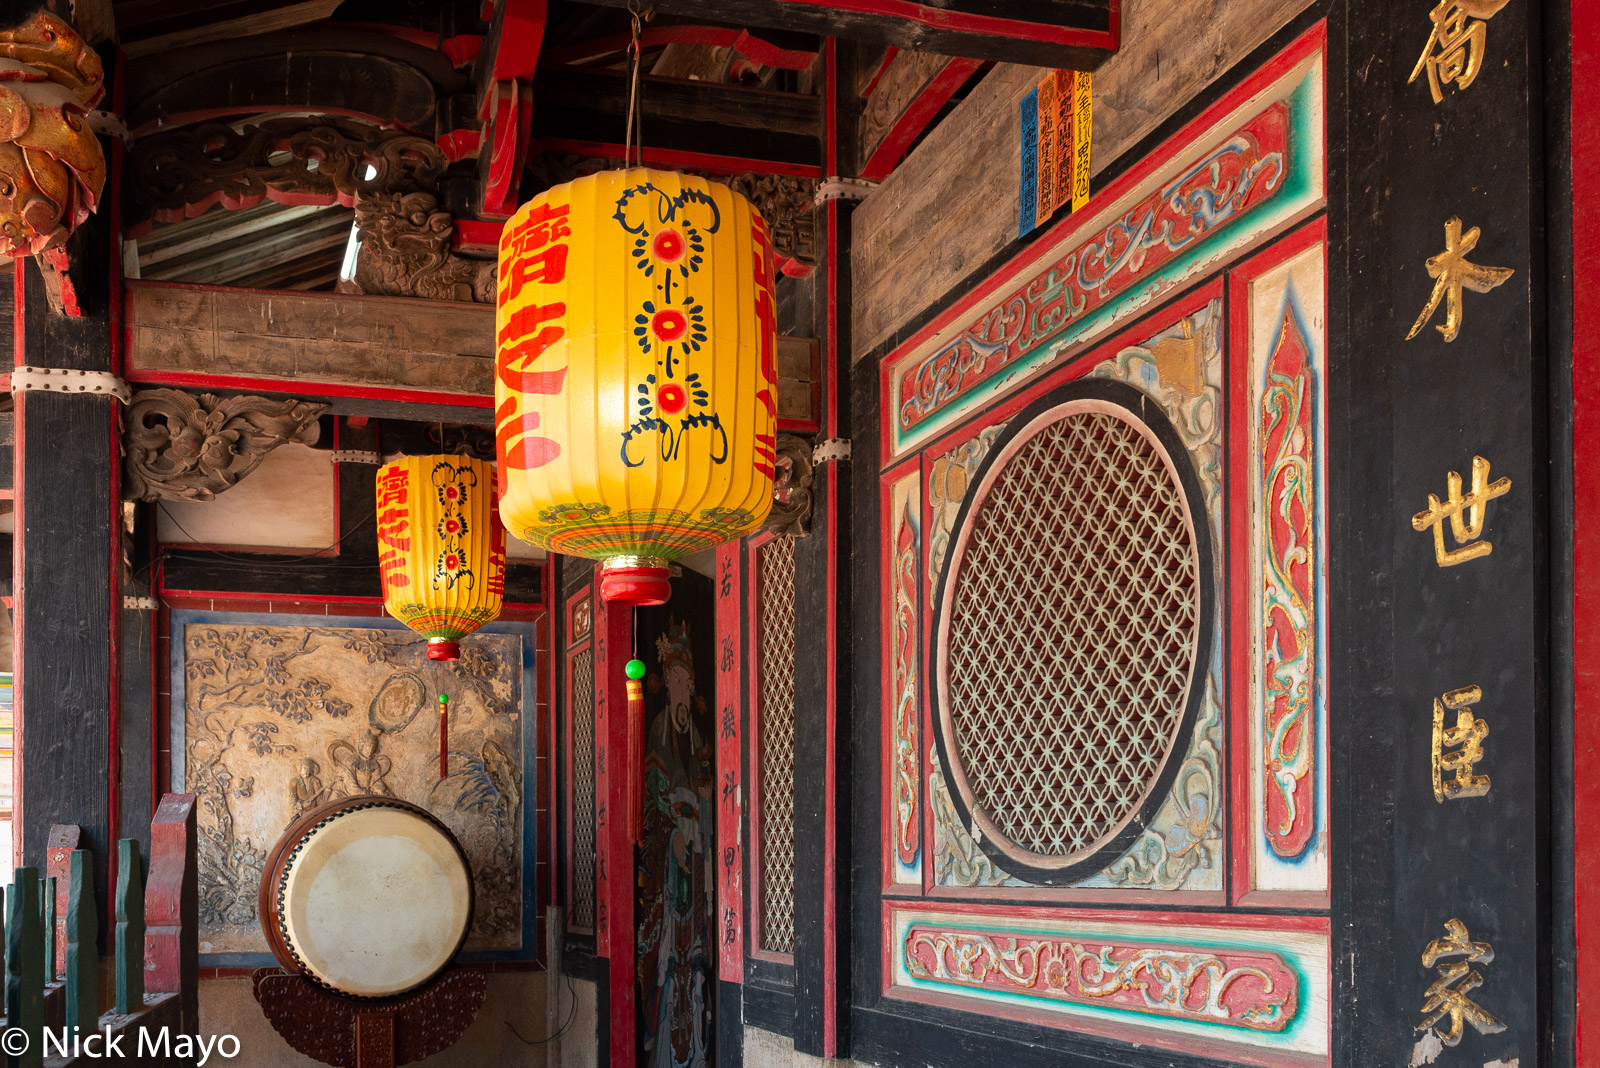 A drum and hanging lanterns at the Qionglin village temple on Kinmen.